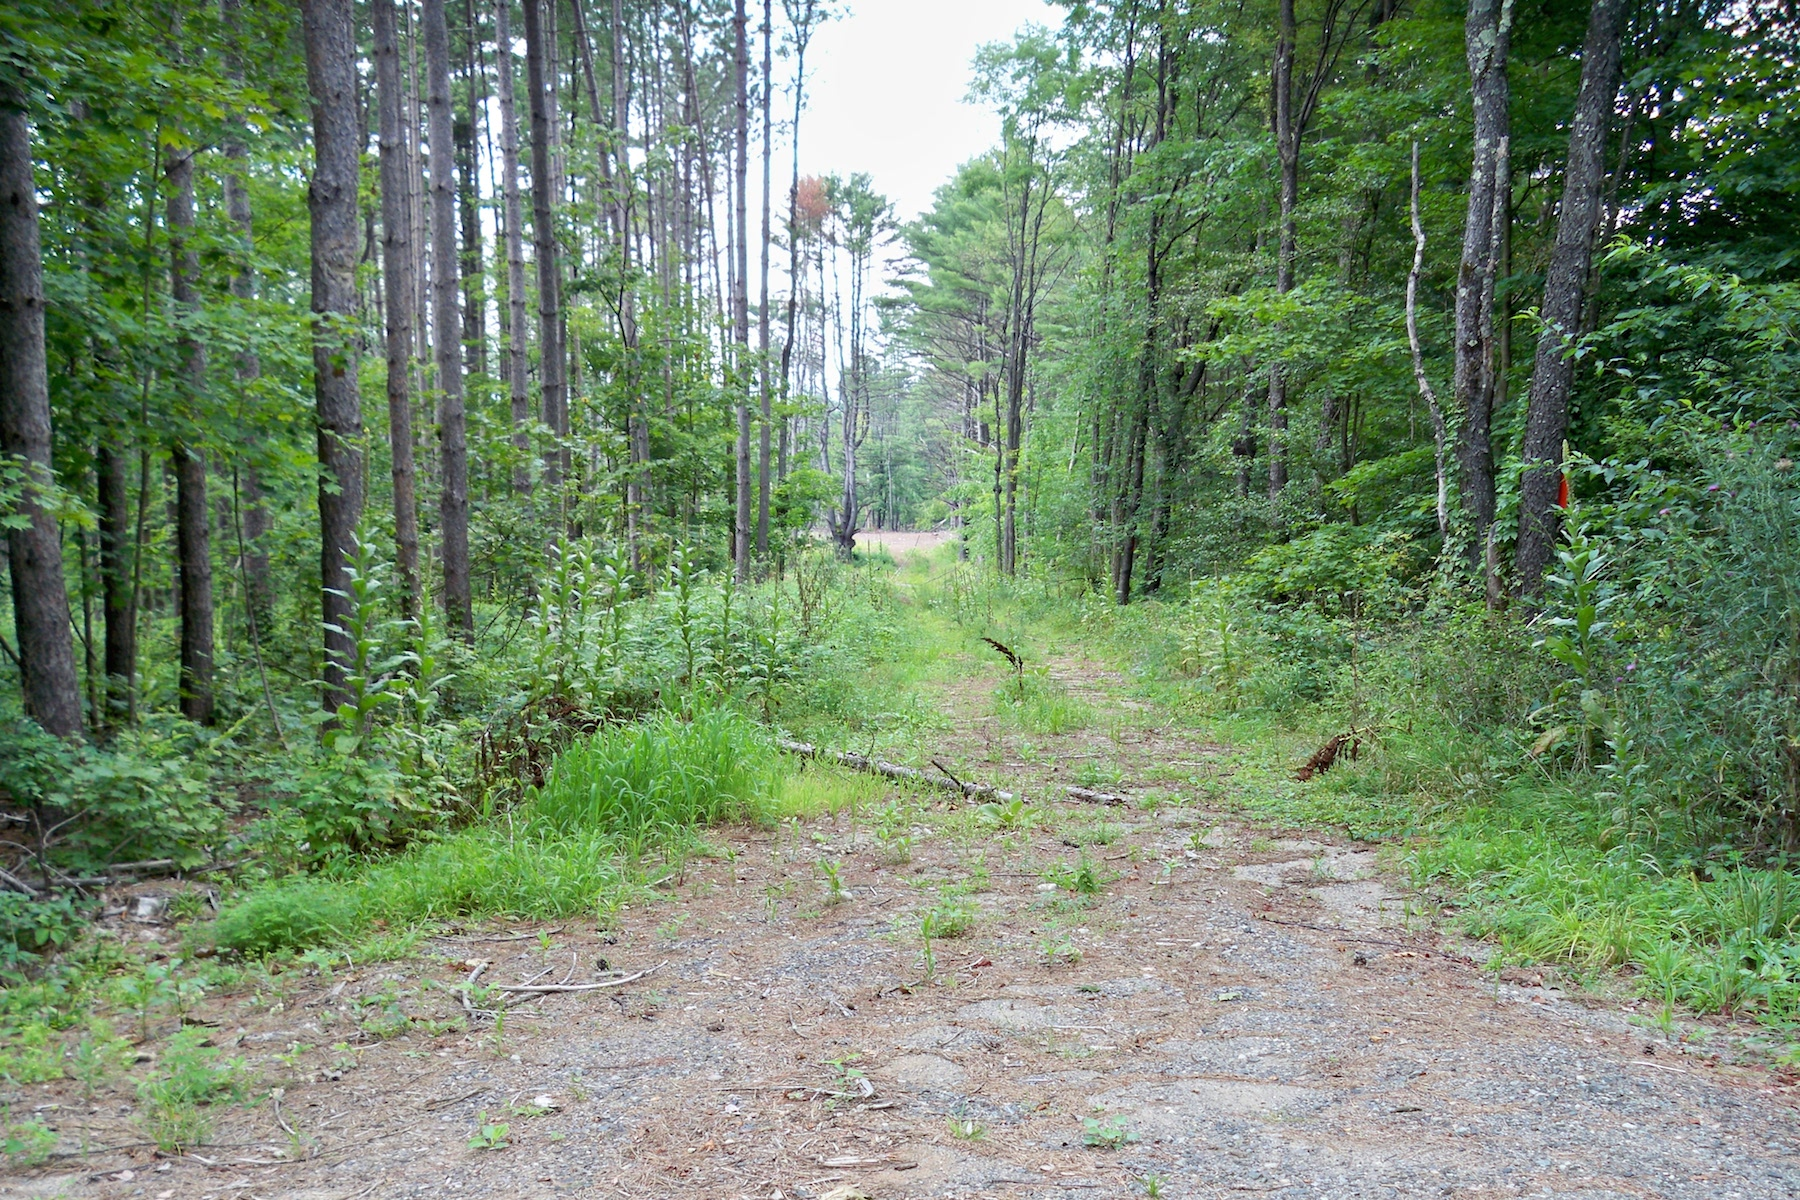 Land for Sale at 155 Squashville Rd, Greenfield, NY 12833 155 Squashville Rd Greenfield, New York 12833 United States